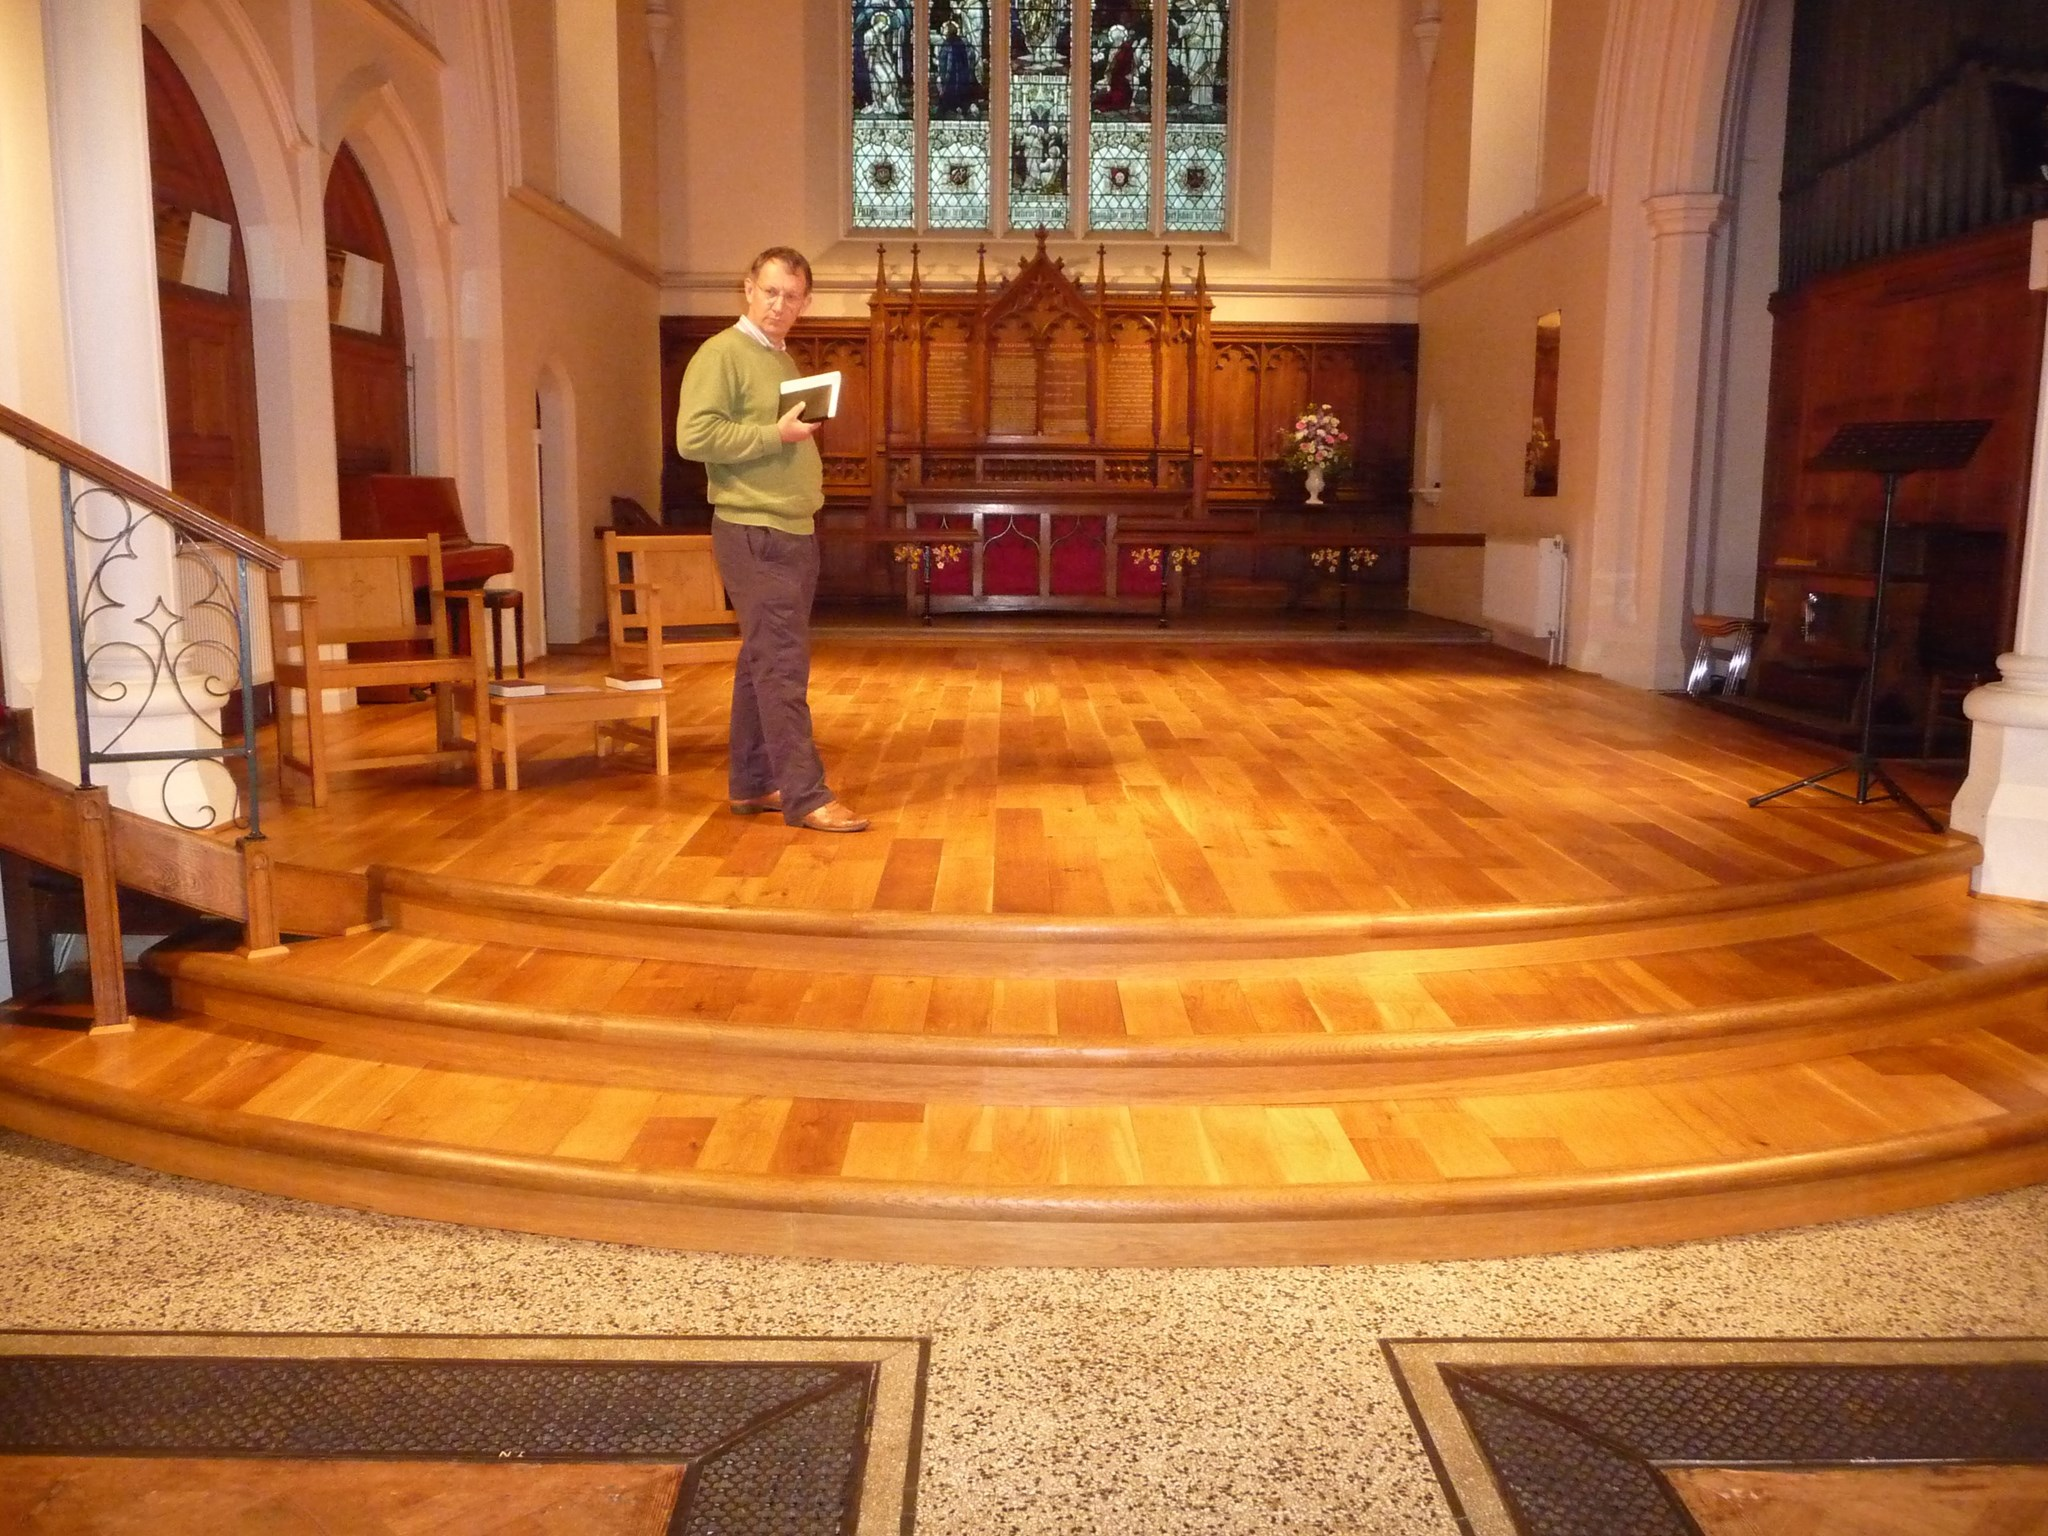 June 2013 In preparation for re-ordering St Mary's Fetcham